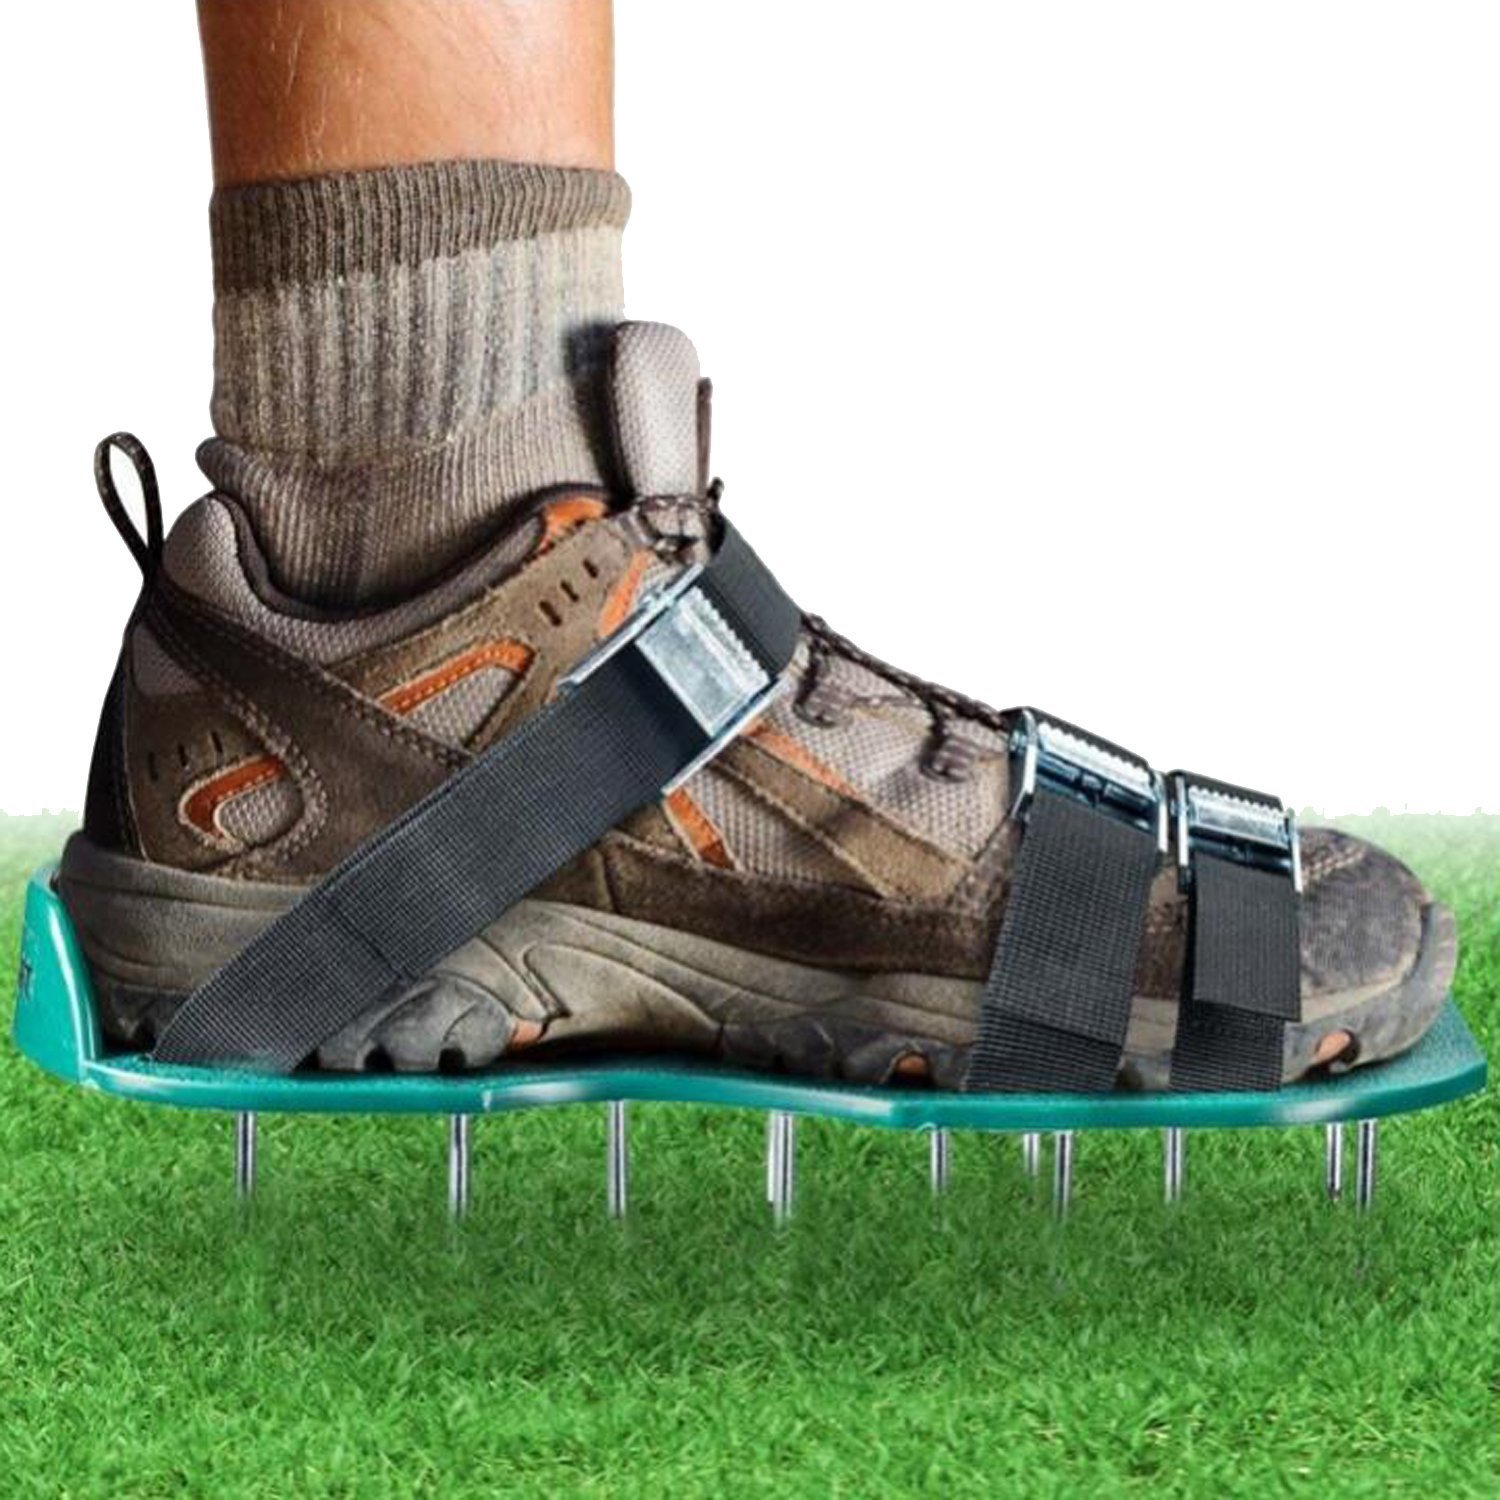 ODIER Lawn Aerator Shoes Cleats Aerating Lawn Soil Sandals 3 Adjustable Straps Heavy Duty Spiked Sandals for Aerating Your Lawn or Yard (Model-A)